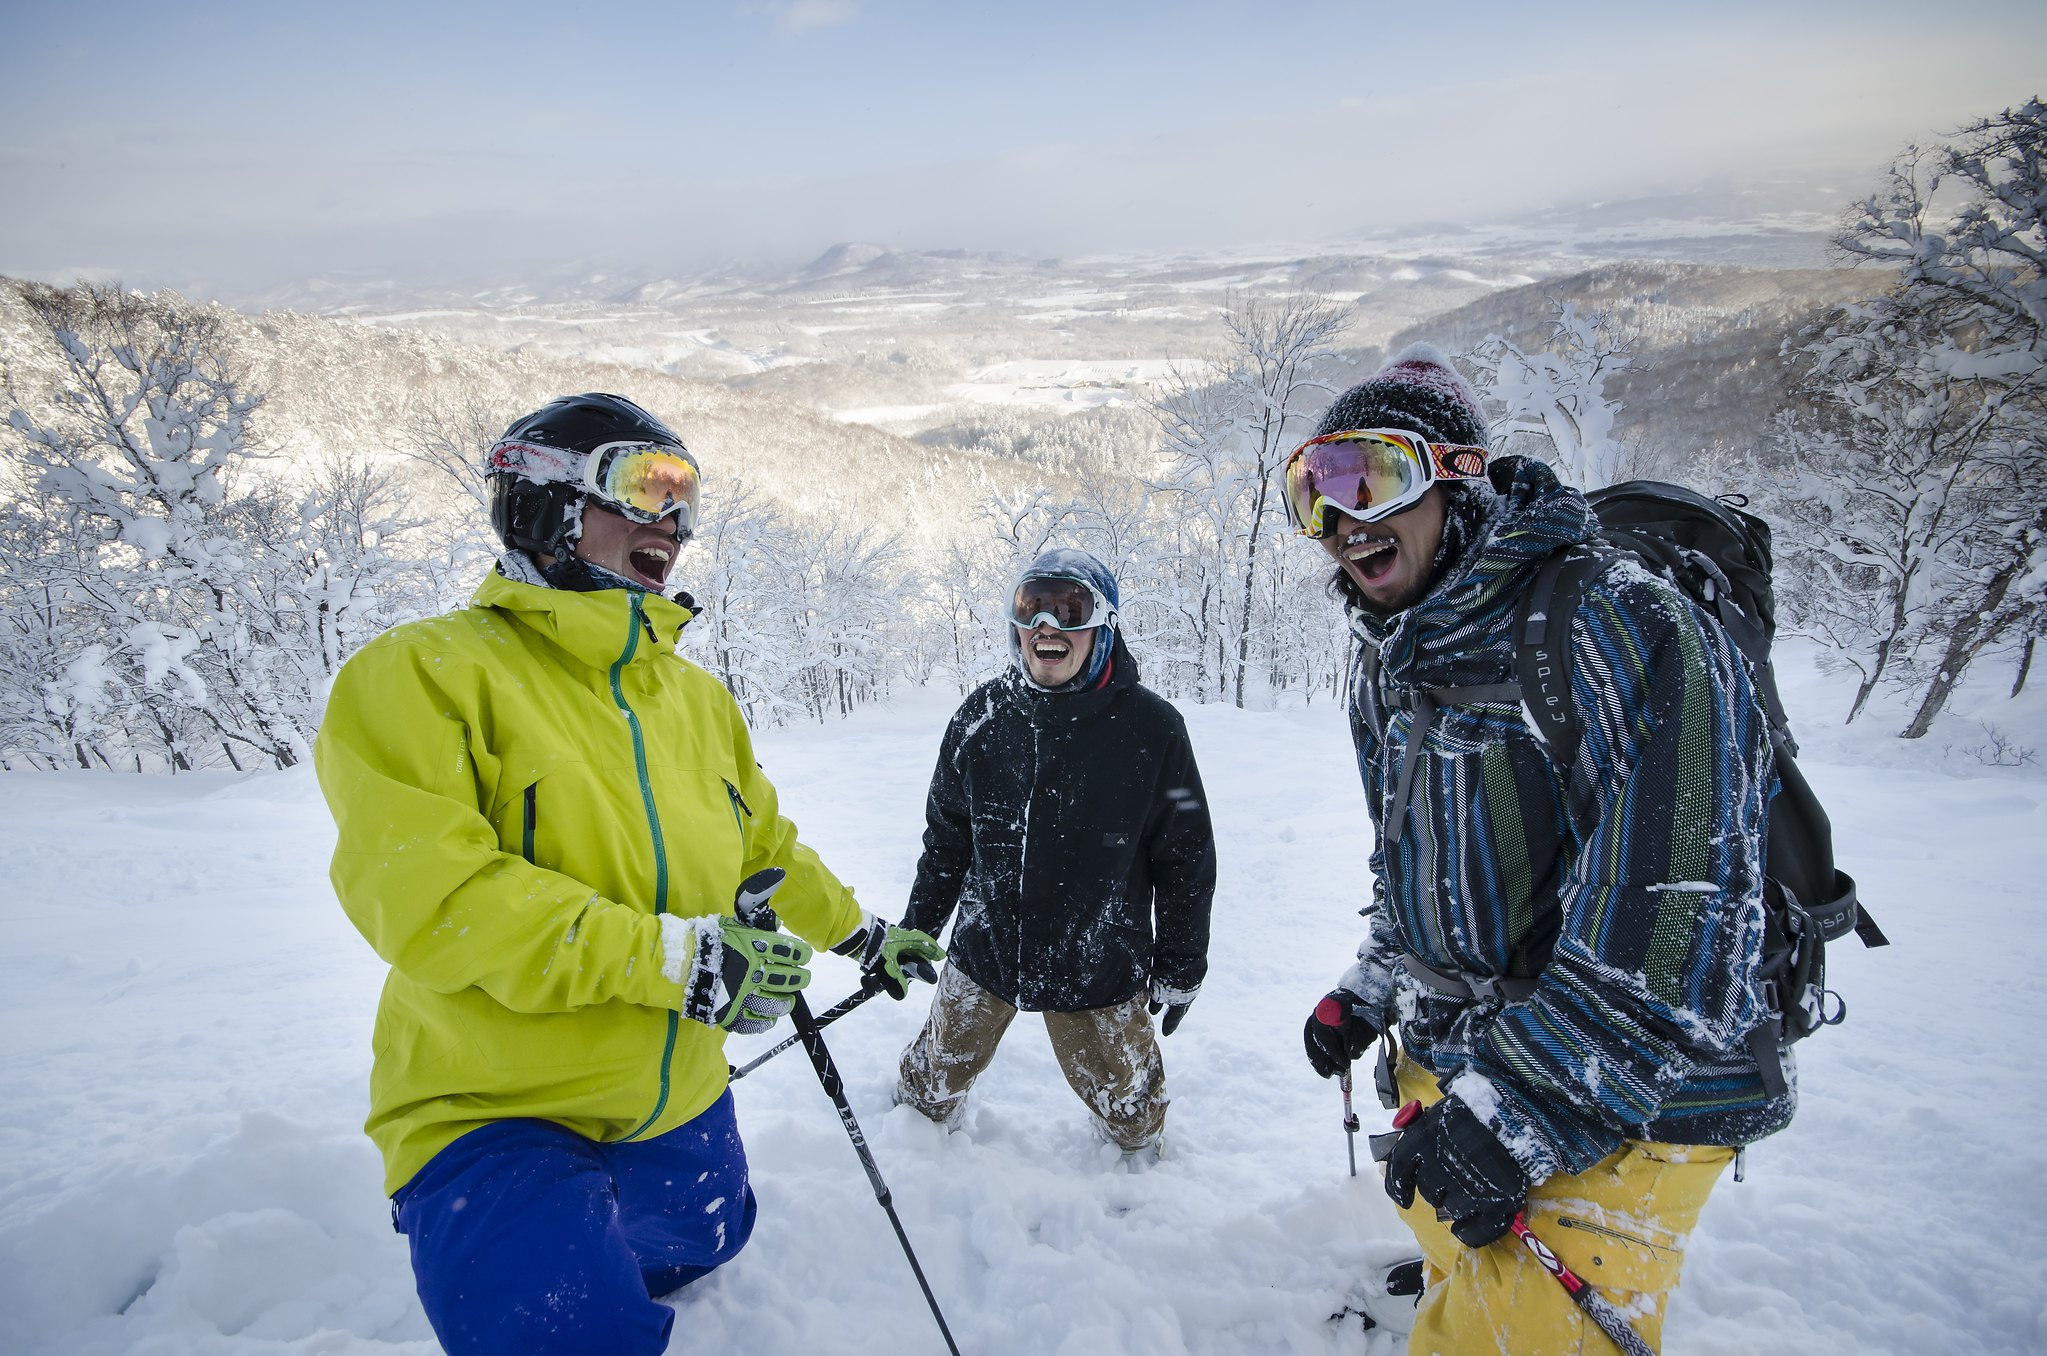 3 men laughing in the deep powder snow of Hanazono, Niseko.